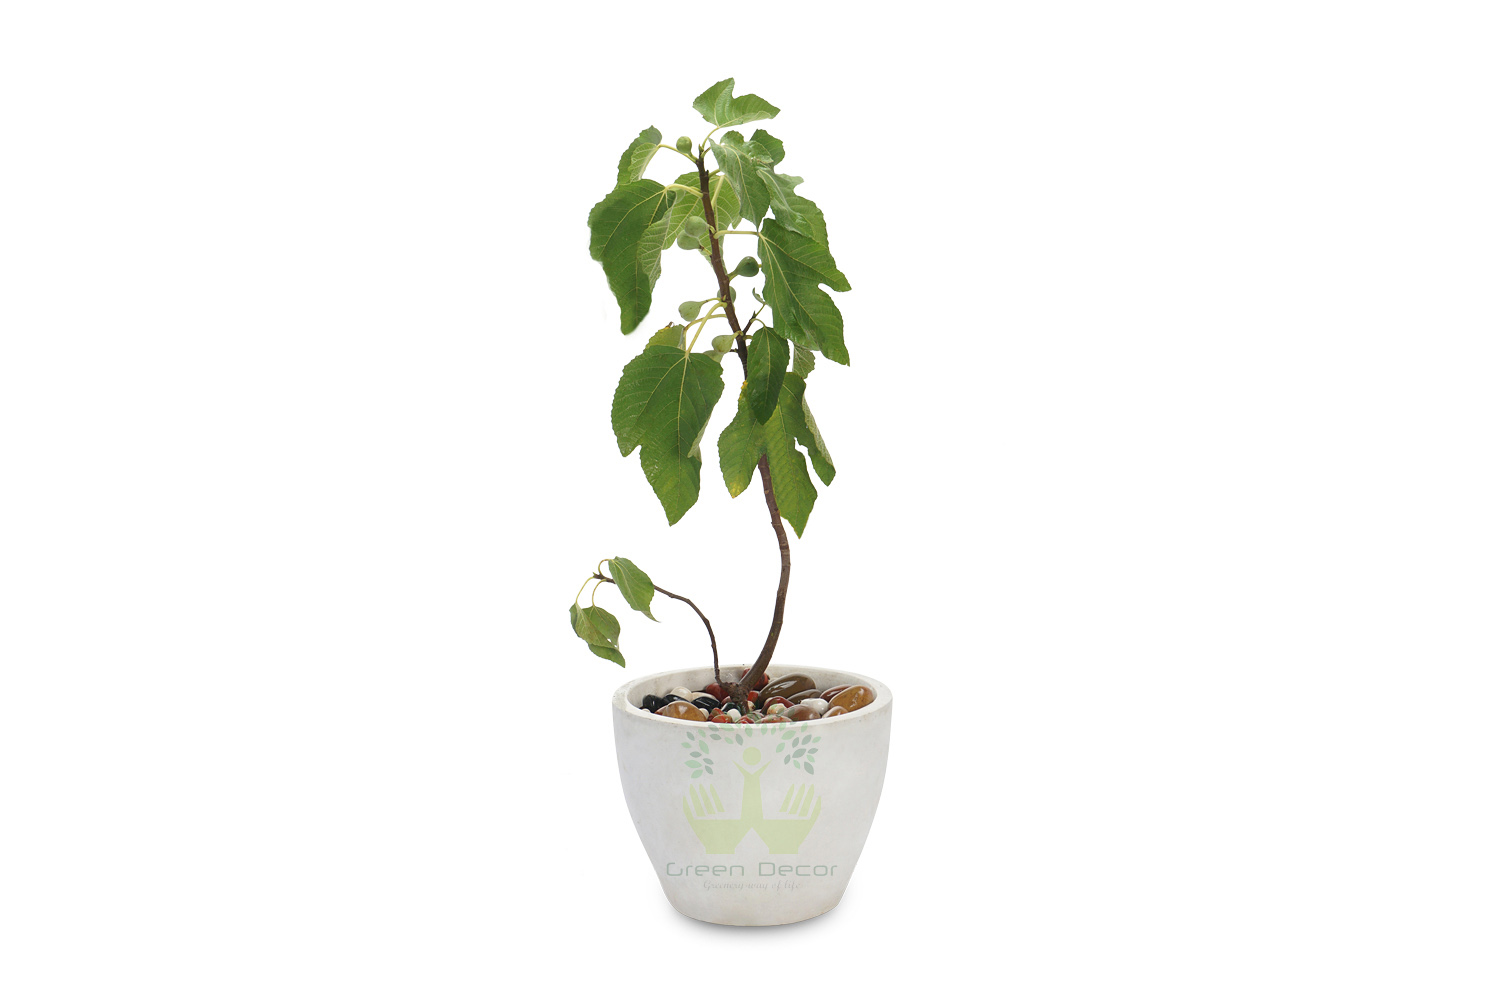 Buy Anjeer Plants , White Pots and seeds in Delhi NCR by the best online nursery shop Greendecor.